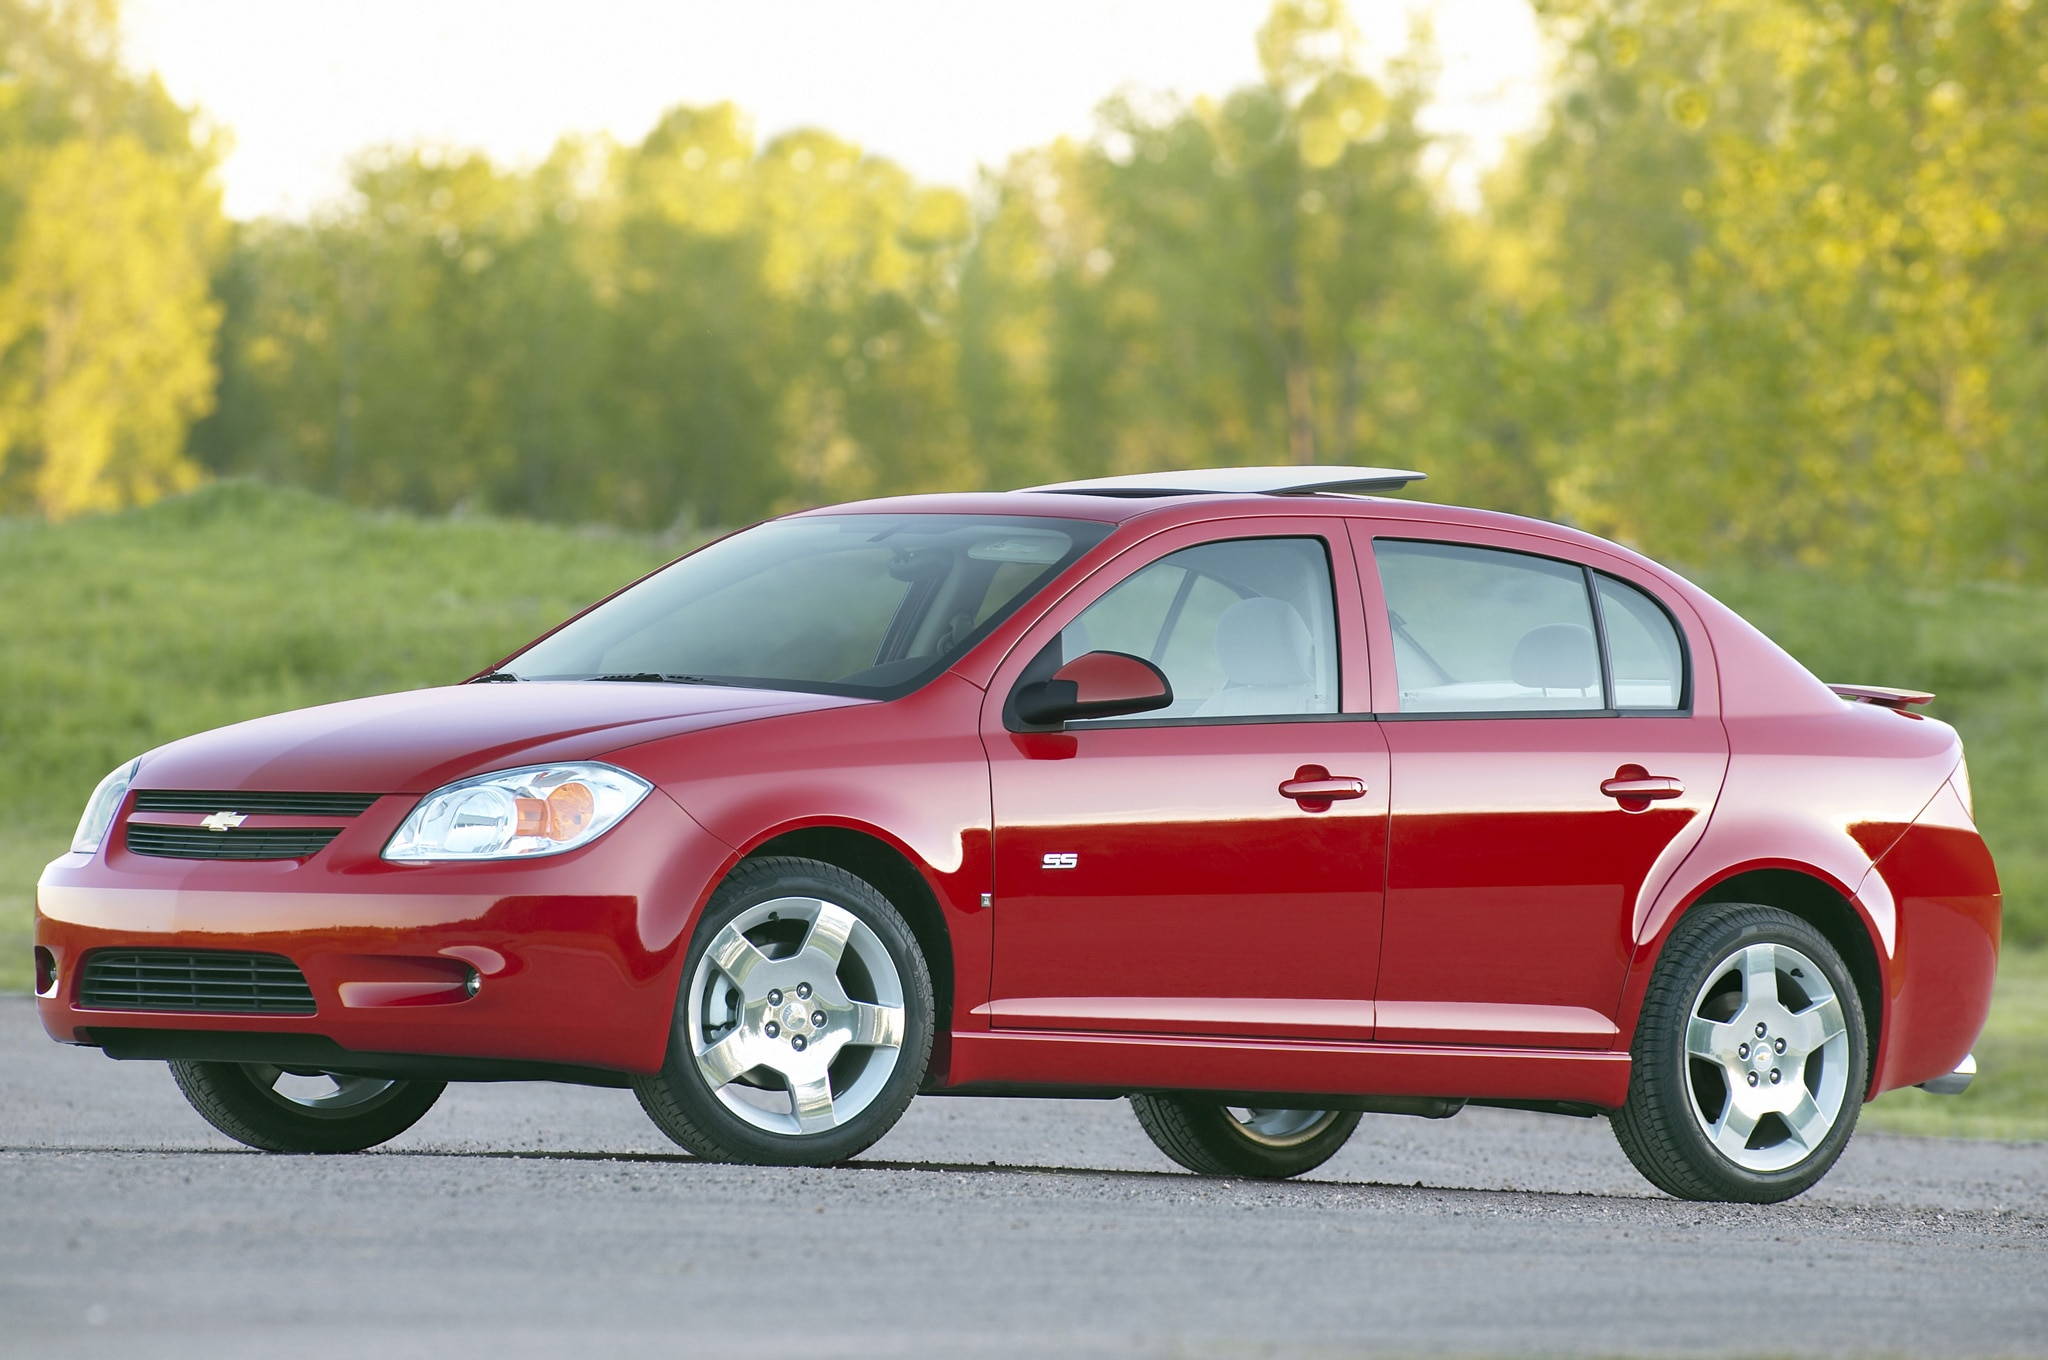 2007 Chevrolet Cobalt Sedan Front View1